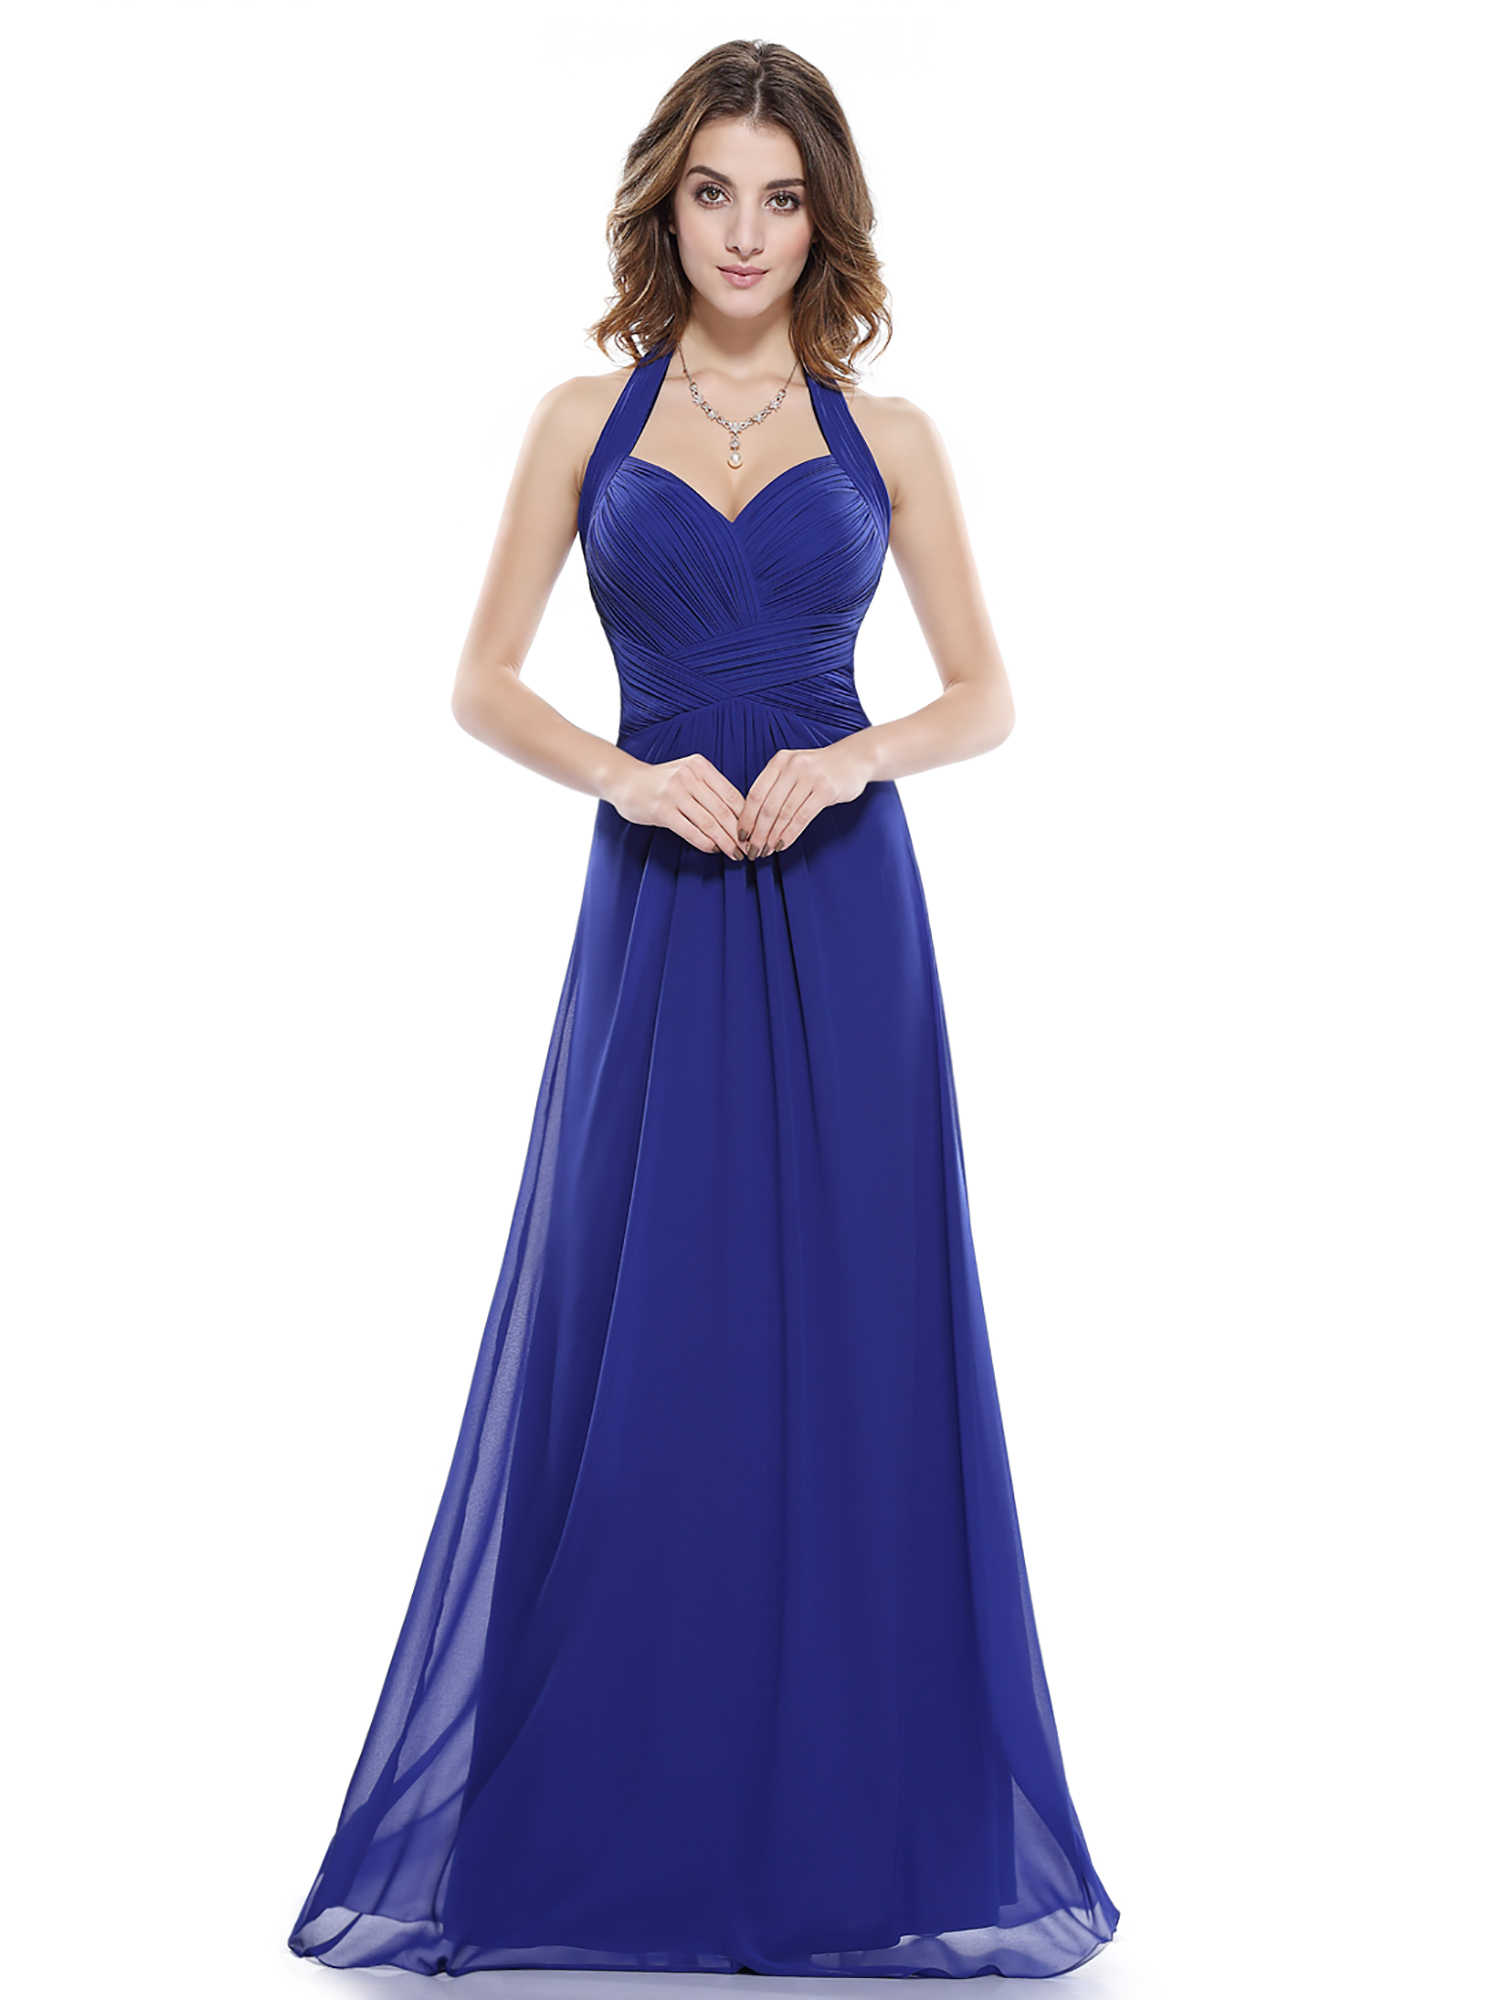 Women 39 s maxi halter bridesmaid dress evening wedding prom for Wedding party dresses for women